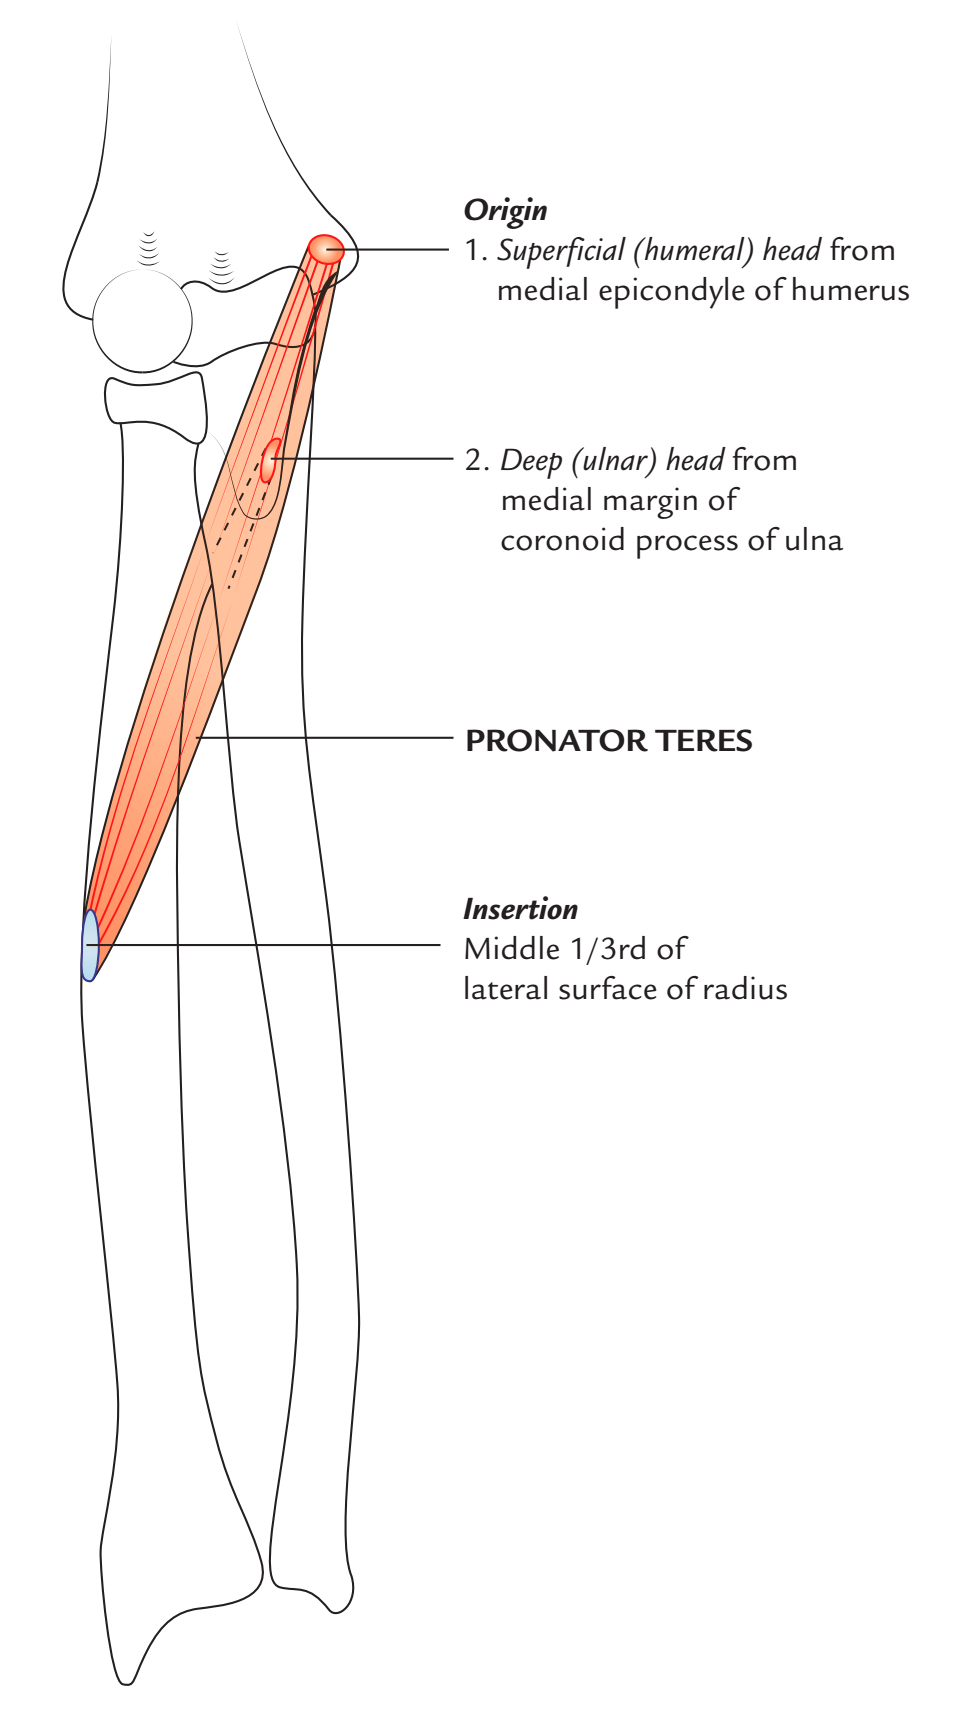 Pronator Teres - Origin and Insertion